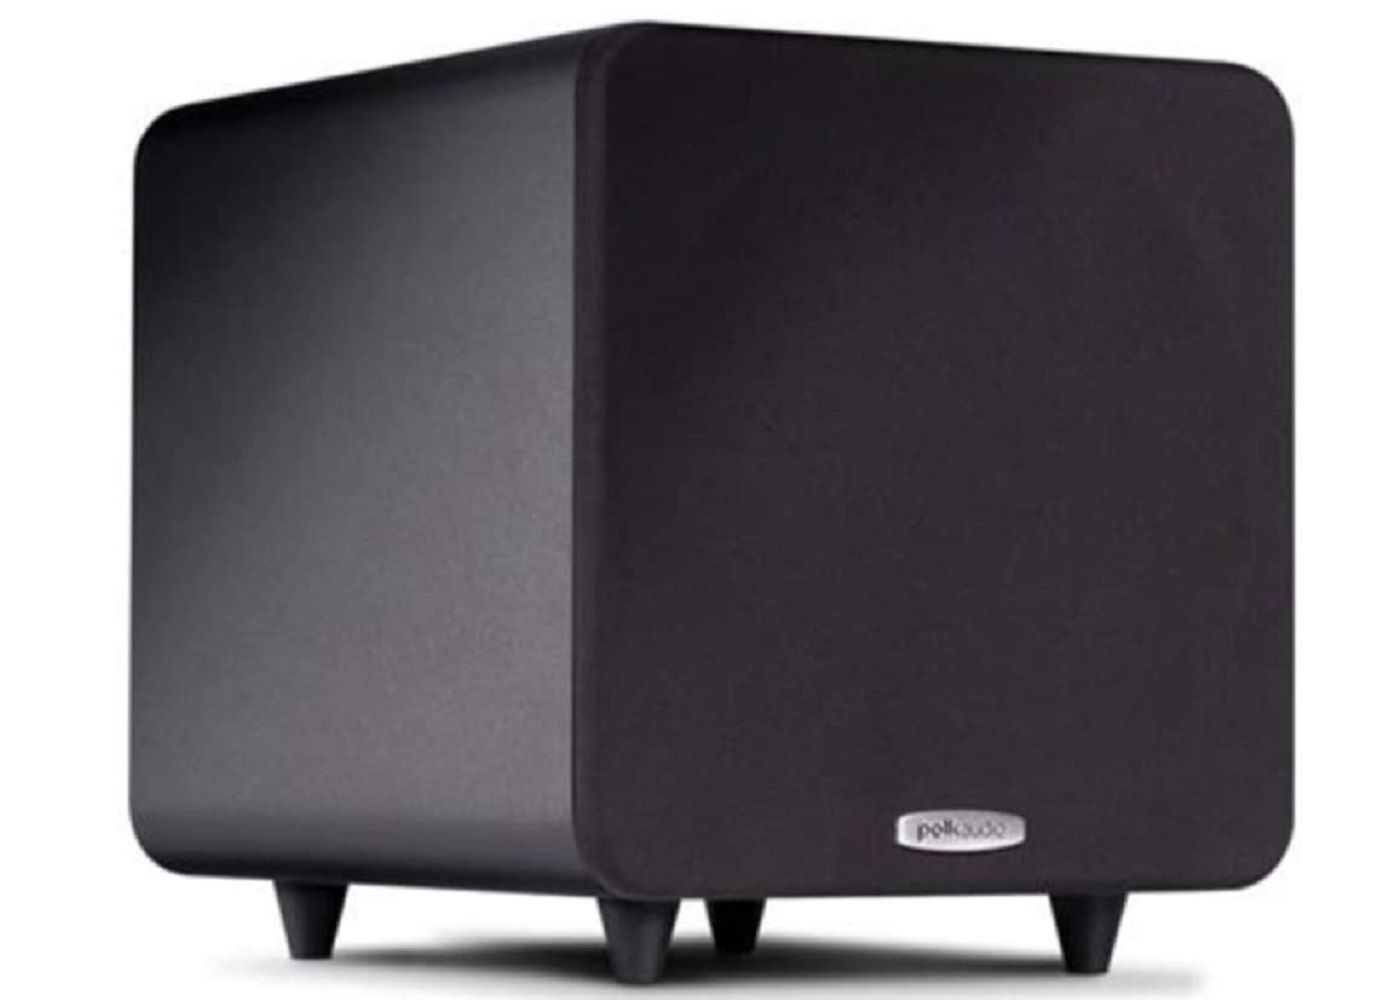 Best 8 Inch Subwoofer in 2021 - Reviews & Buyers Guide